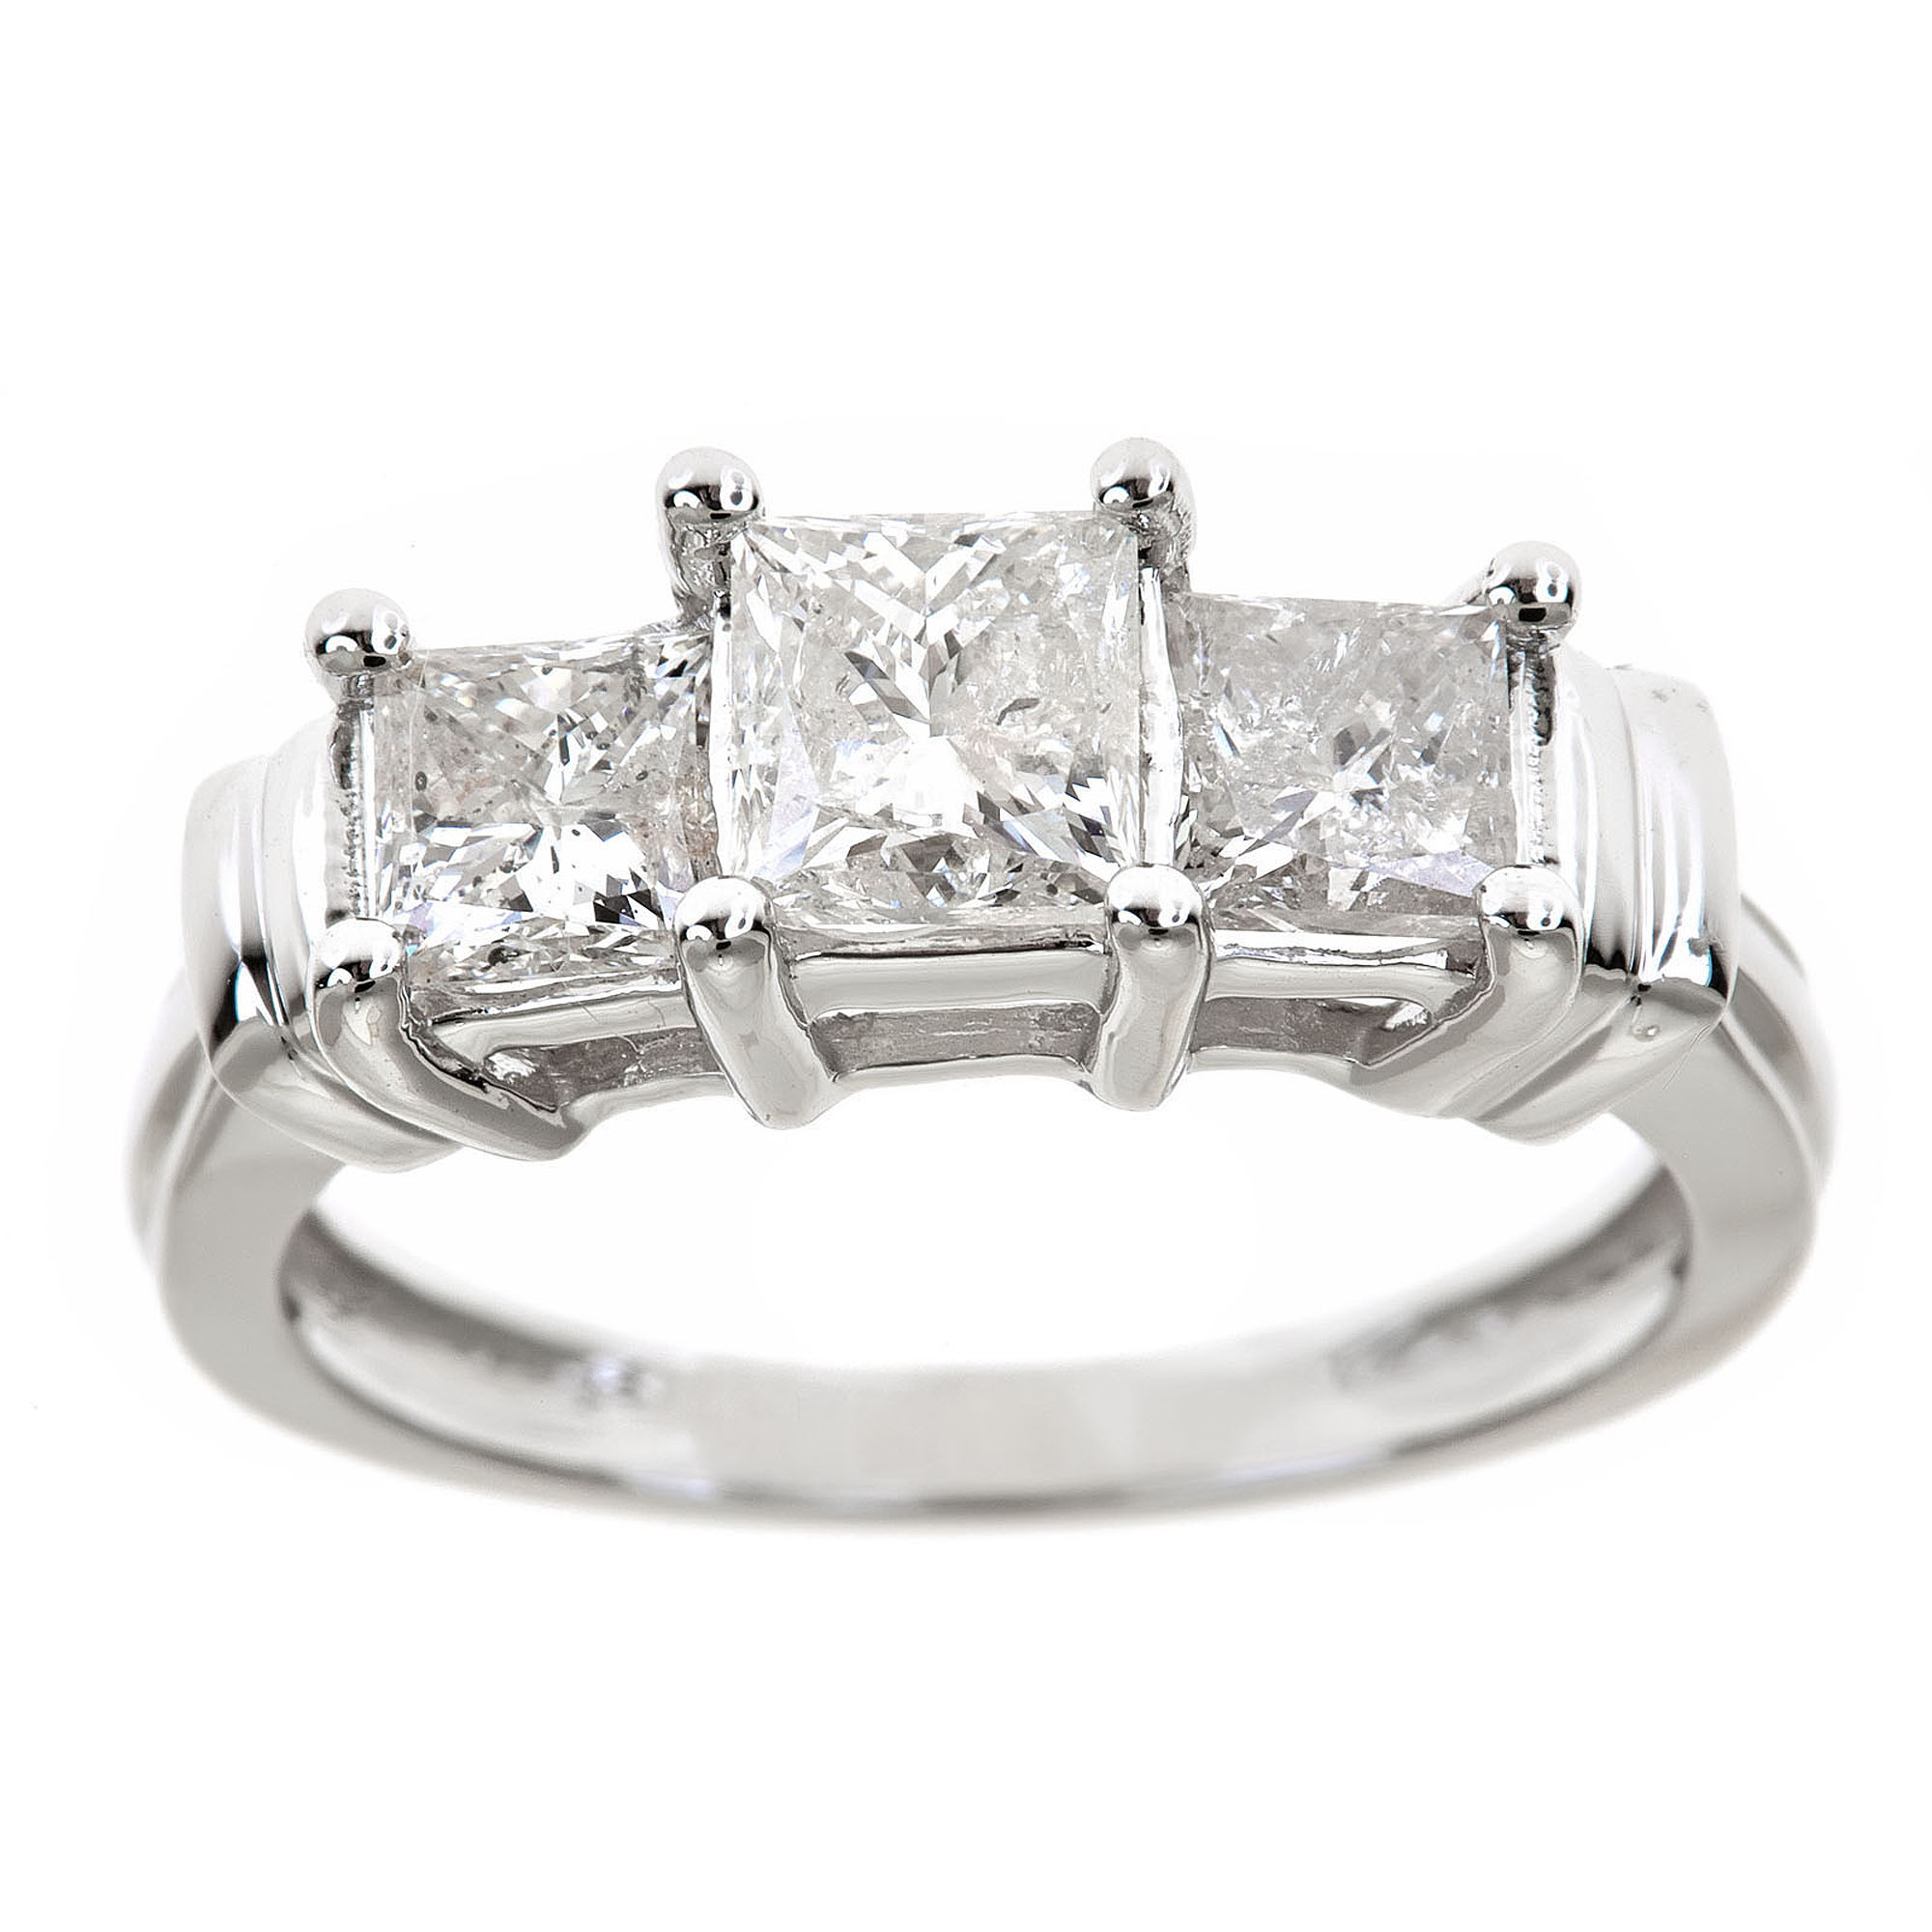 from designs est diamond mainpage keanes online gifts irish wedding ring jewellers jewellery ireland